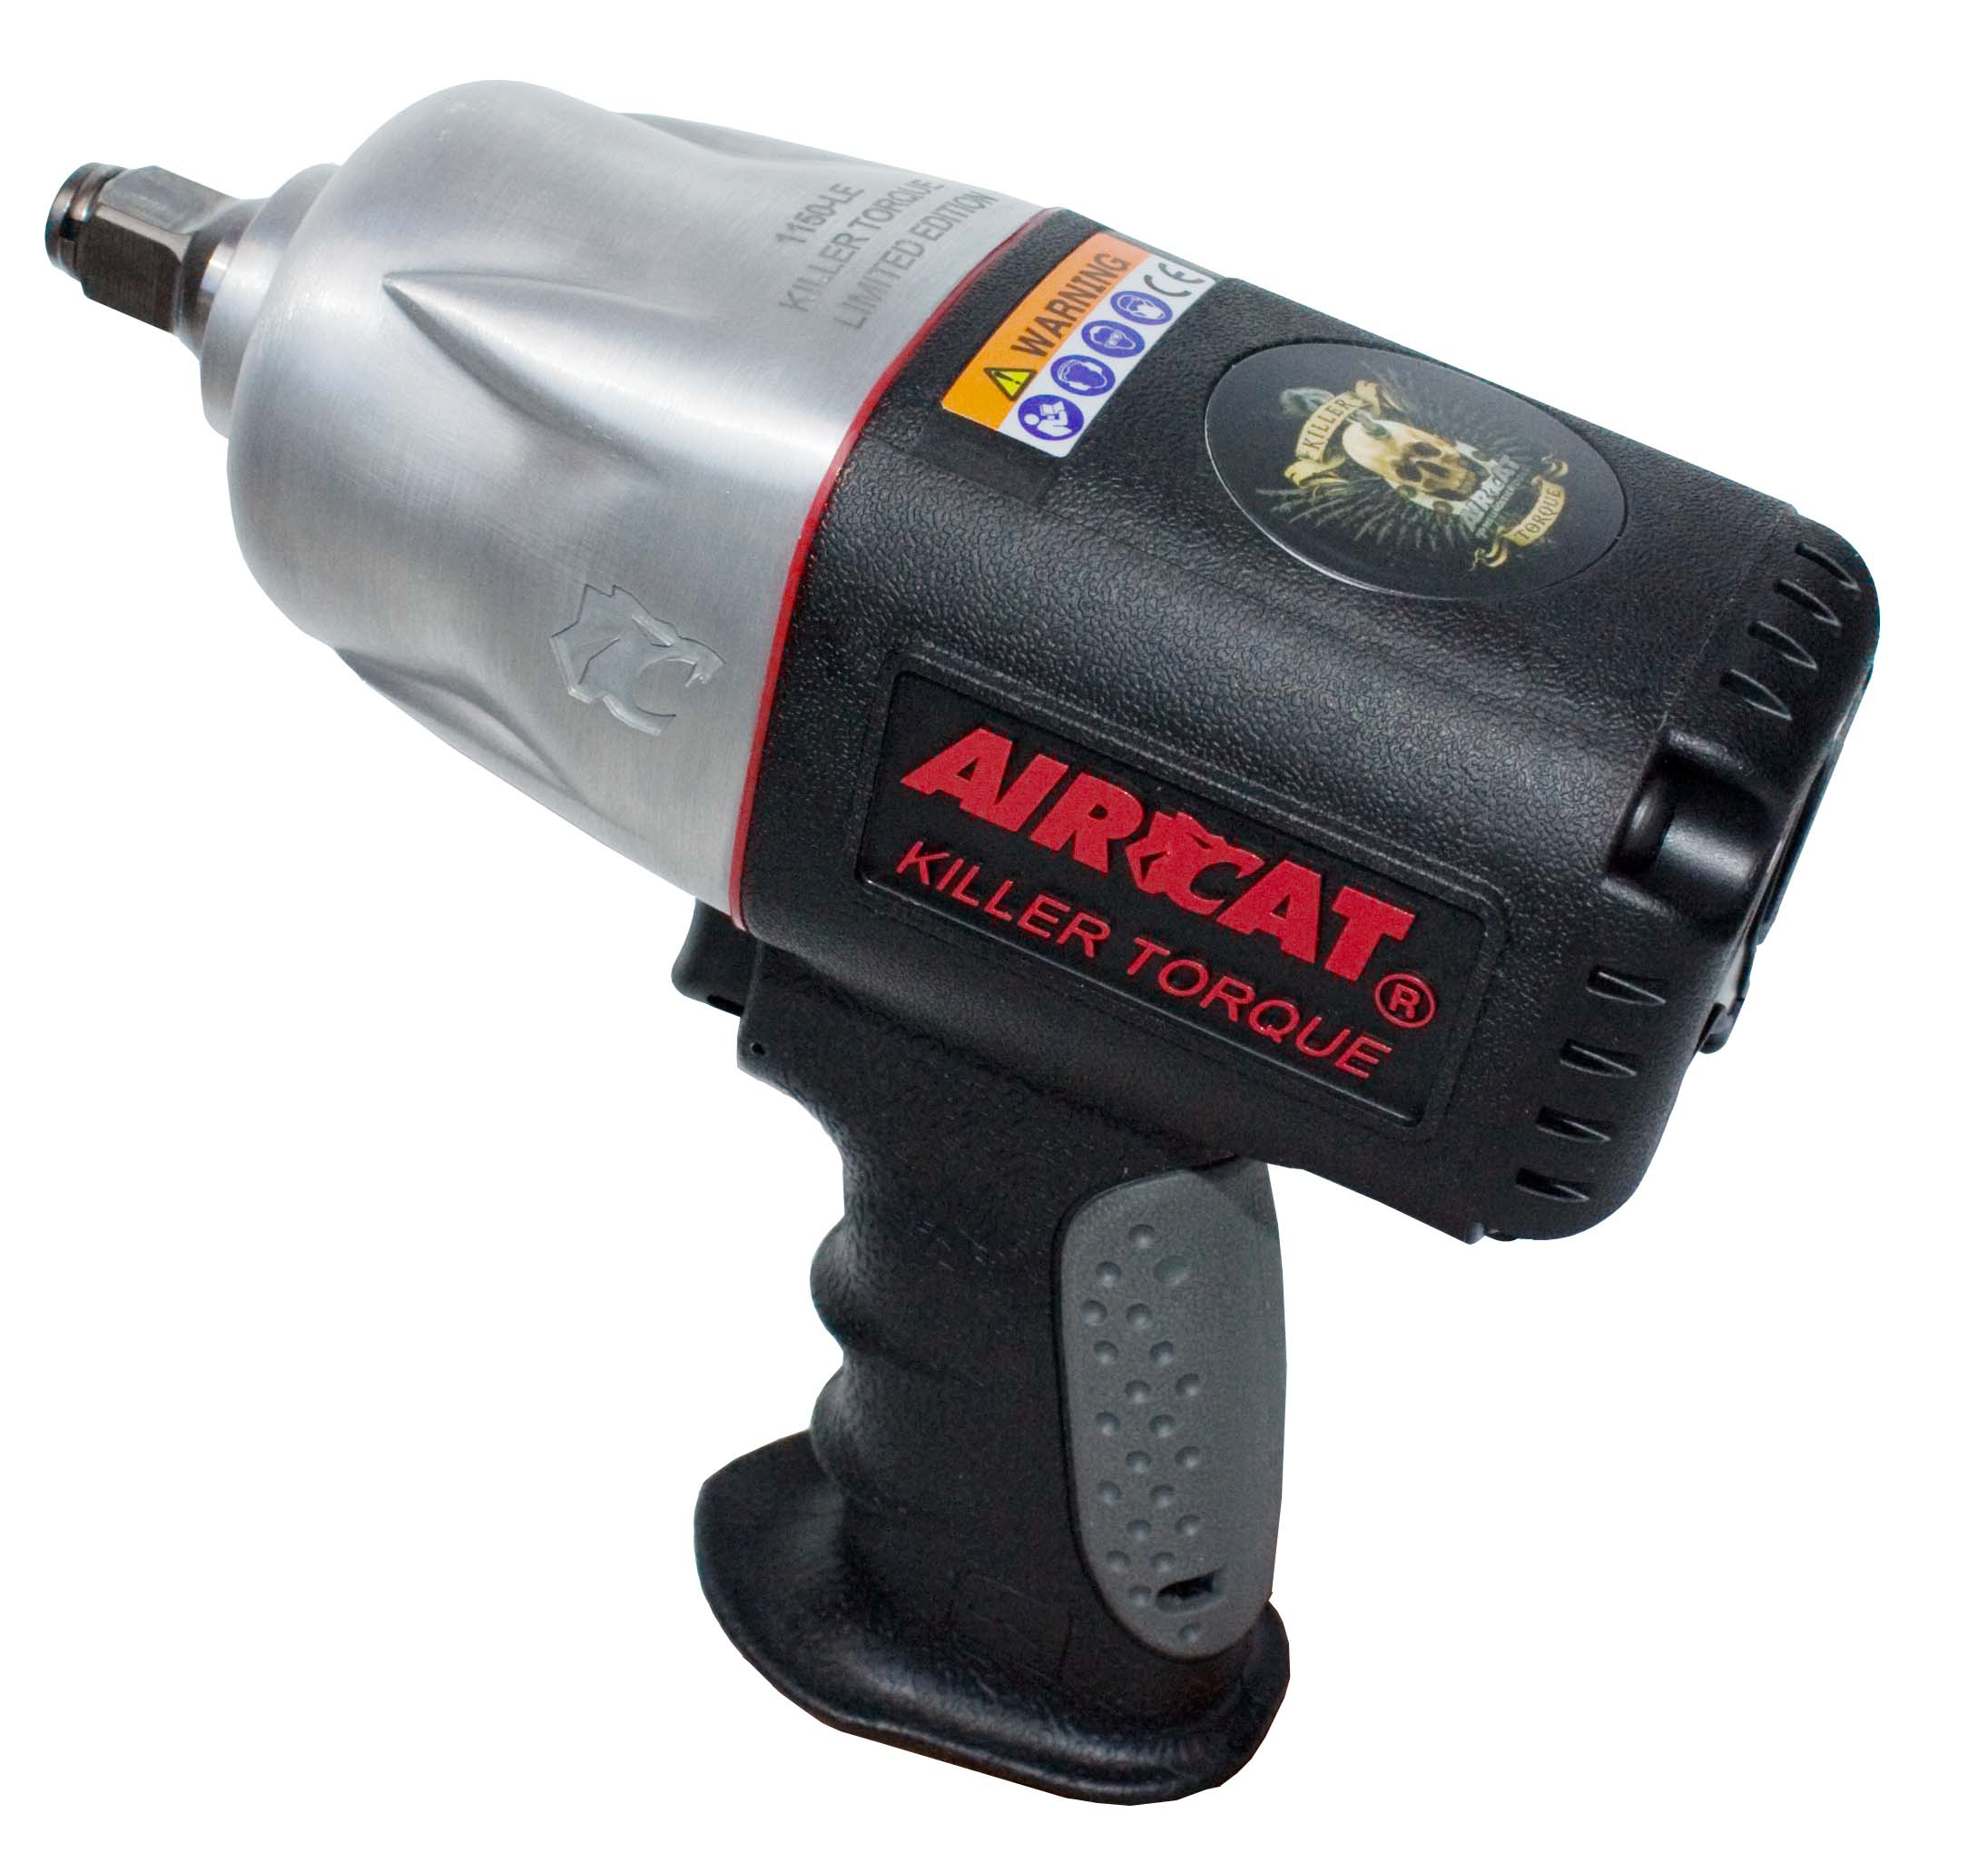 Limited Edition Killer Torque 1/2' Impact Wrench